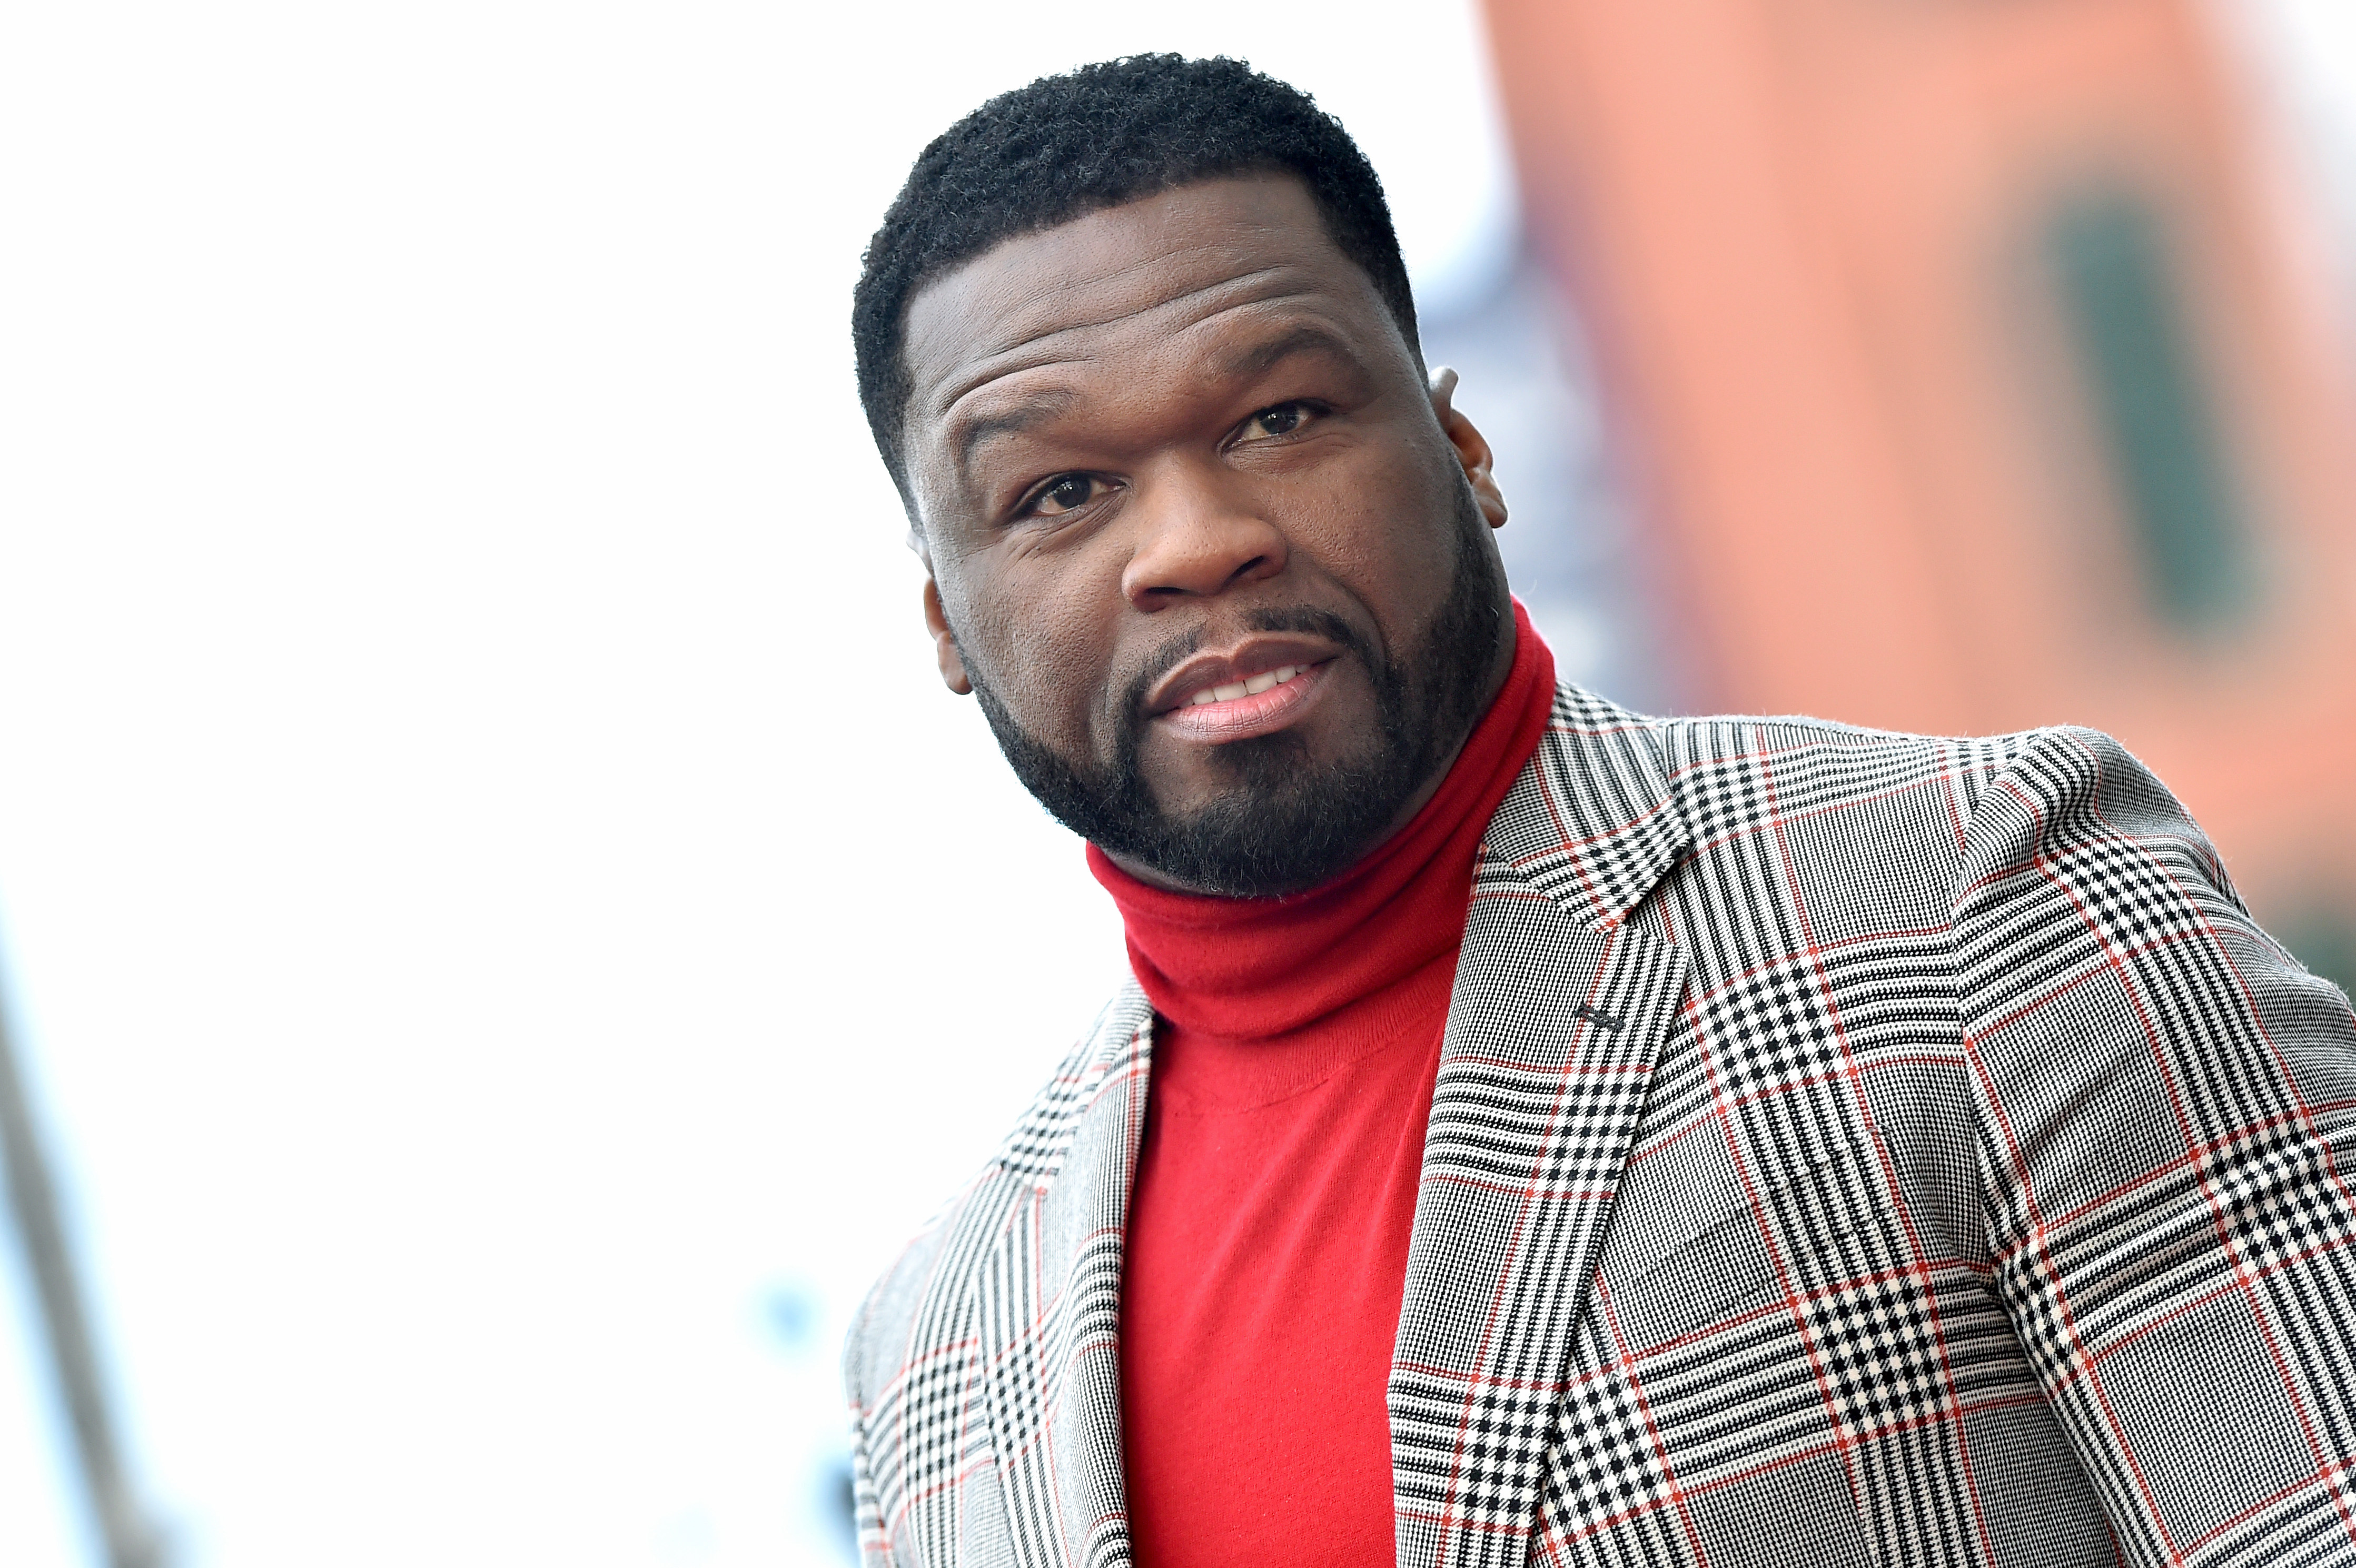 50 Cent Shared His Thoughts On Lil Wayne's Breakup And Touted Weezy's Clout – BroBible